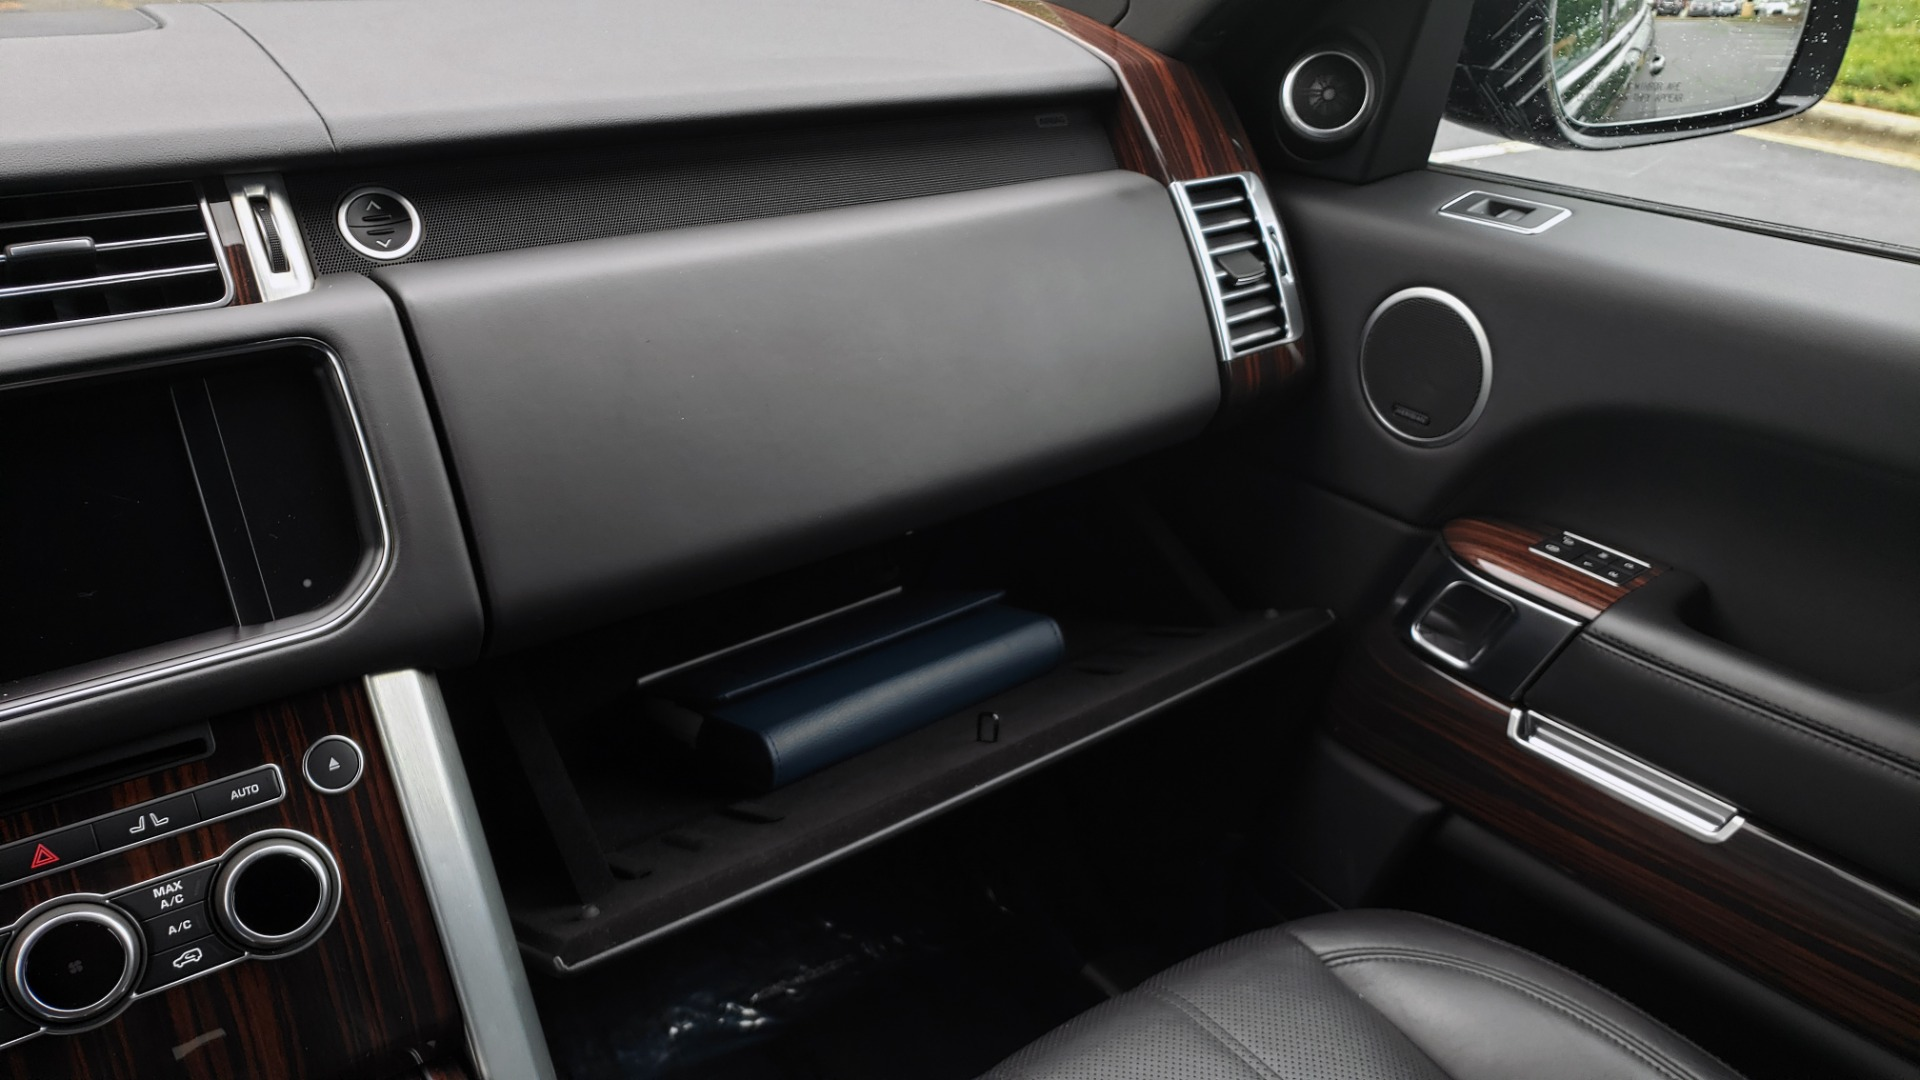 Used 2016 Land Rover Range Rover HSE 3.0L SC V6 / NAV / PANO-ROOF / VENT SEATS / REARVIEW / BLIND SPOT for sale Sold at Formula Imports in Charlotte NC 28227 55